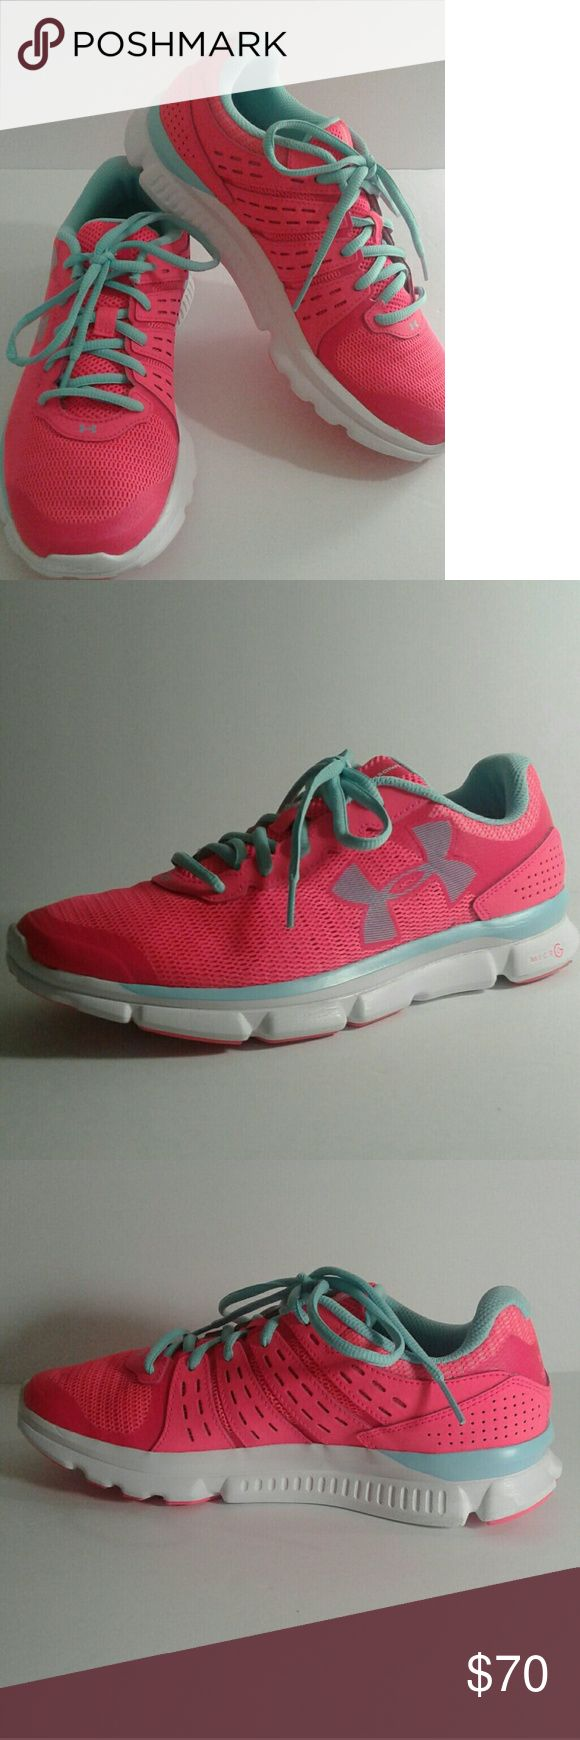 Under Armour MICRO G Running Shoes Under Armour MICRO G Running Shoes  .. NWOT .. NEW NEVER WORN!!  PRICE TO SALE!!  * Size:  8 * Color: Pink, White, &  Blue PRICE IS FIRM!! Under Armour Shoes Sneakers